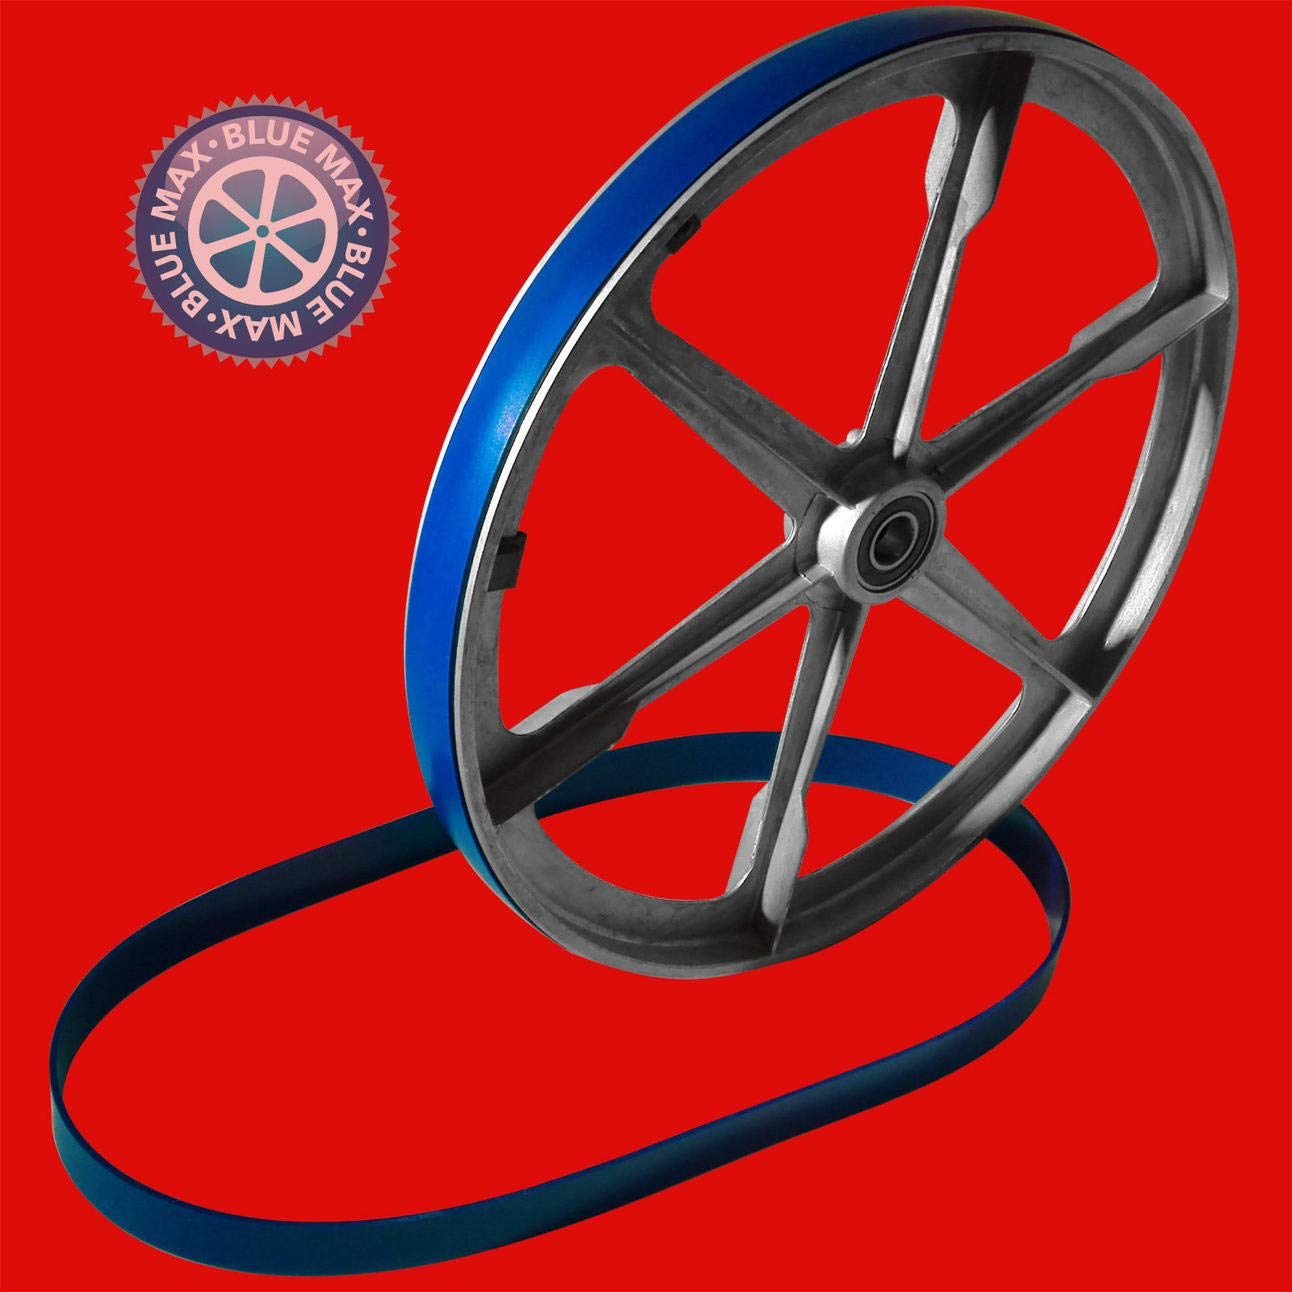 BLUE MAX ULTRA DUTY BAND SAW TIRE SET FOR POWERMATIC MODEL 143 BAND SAW